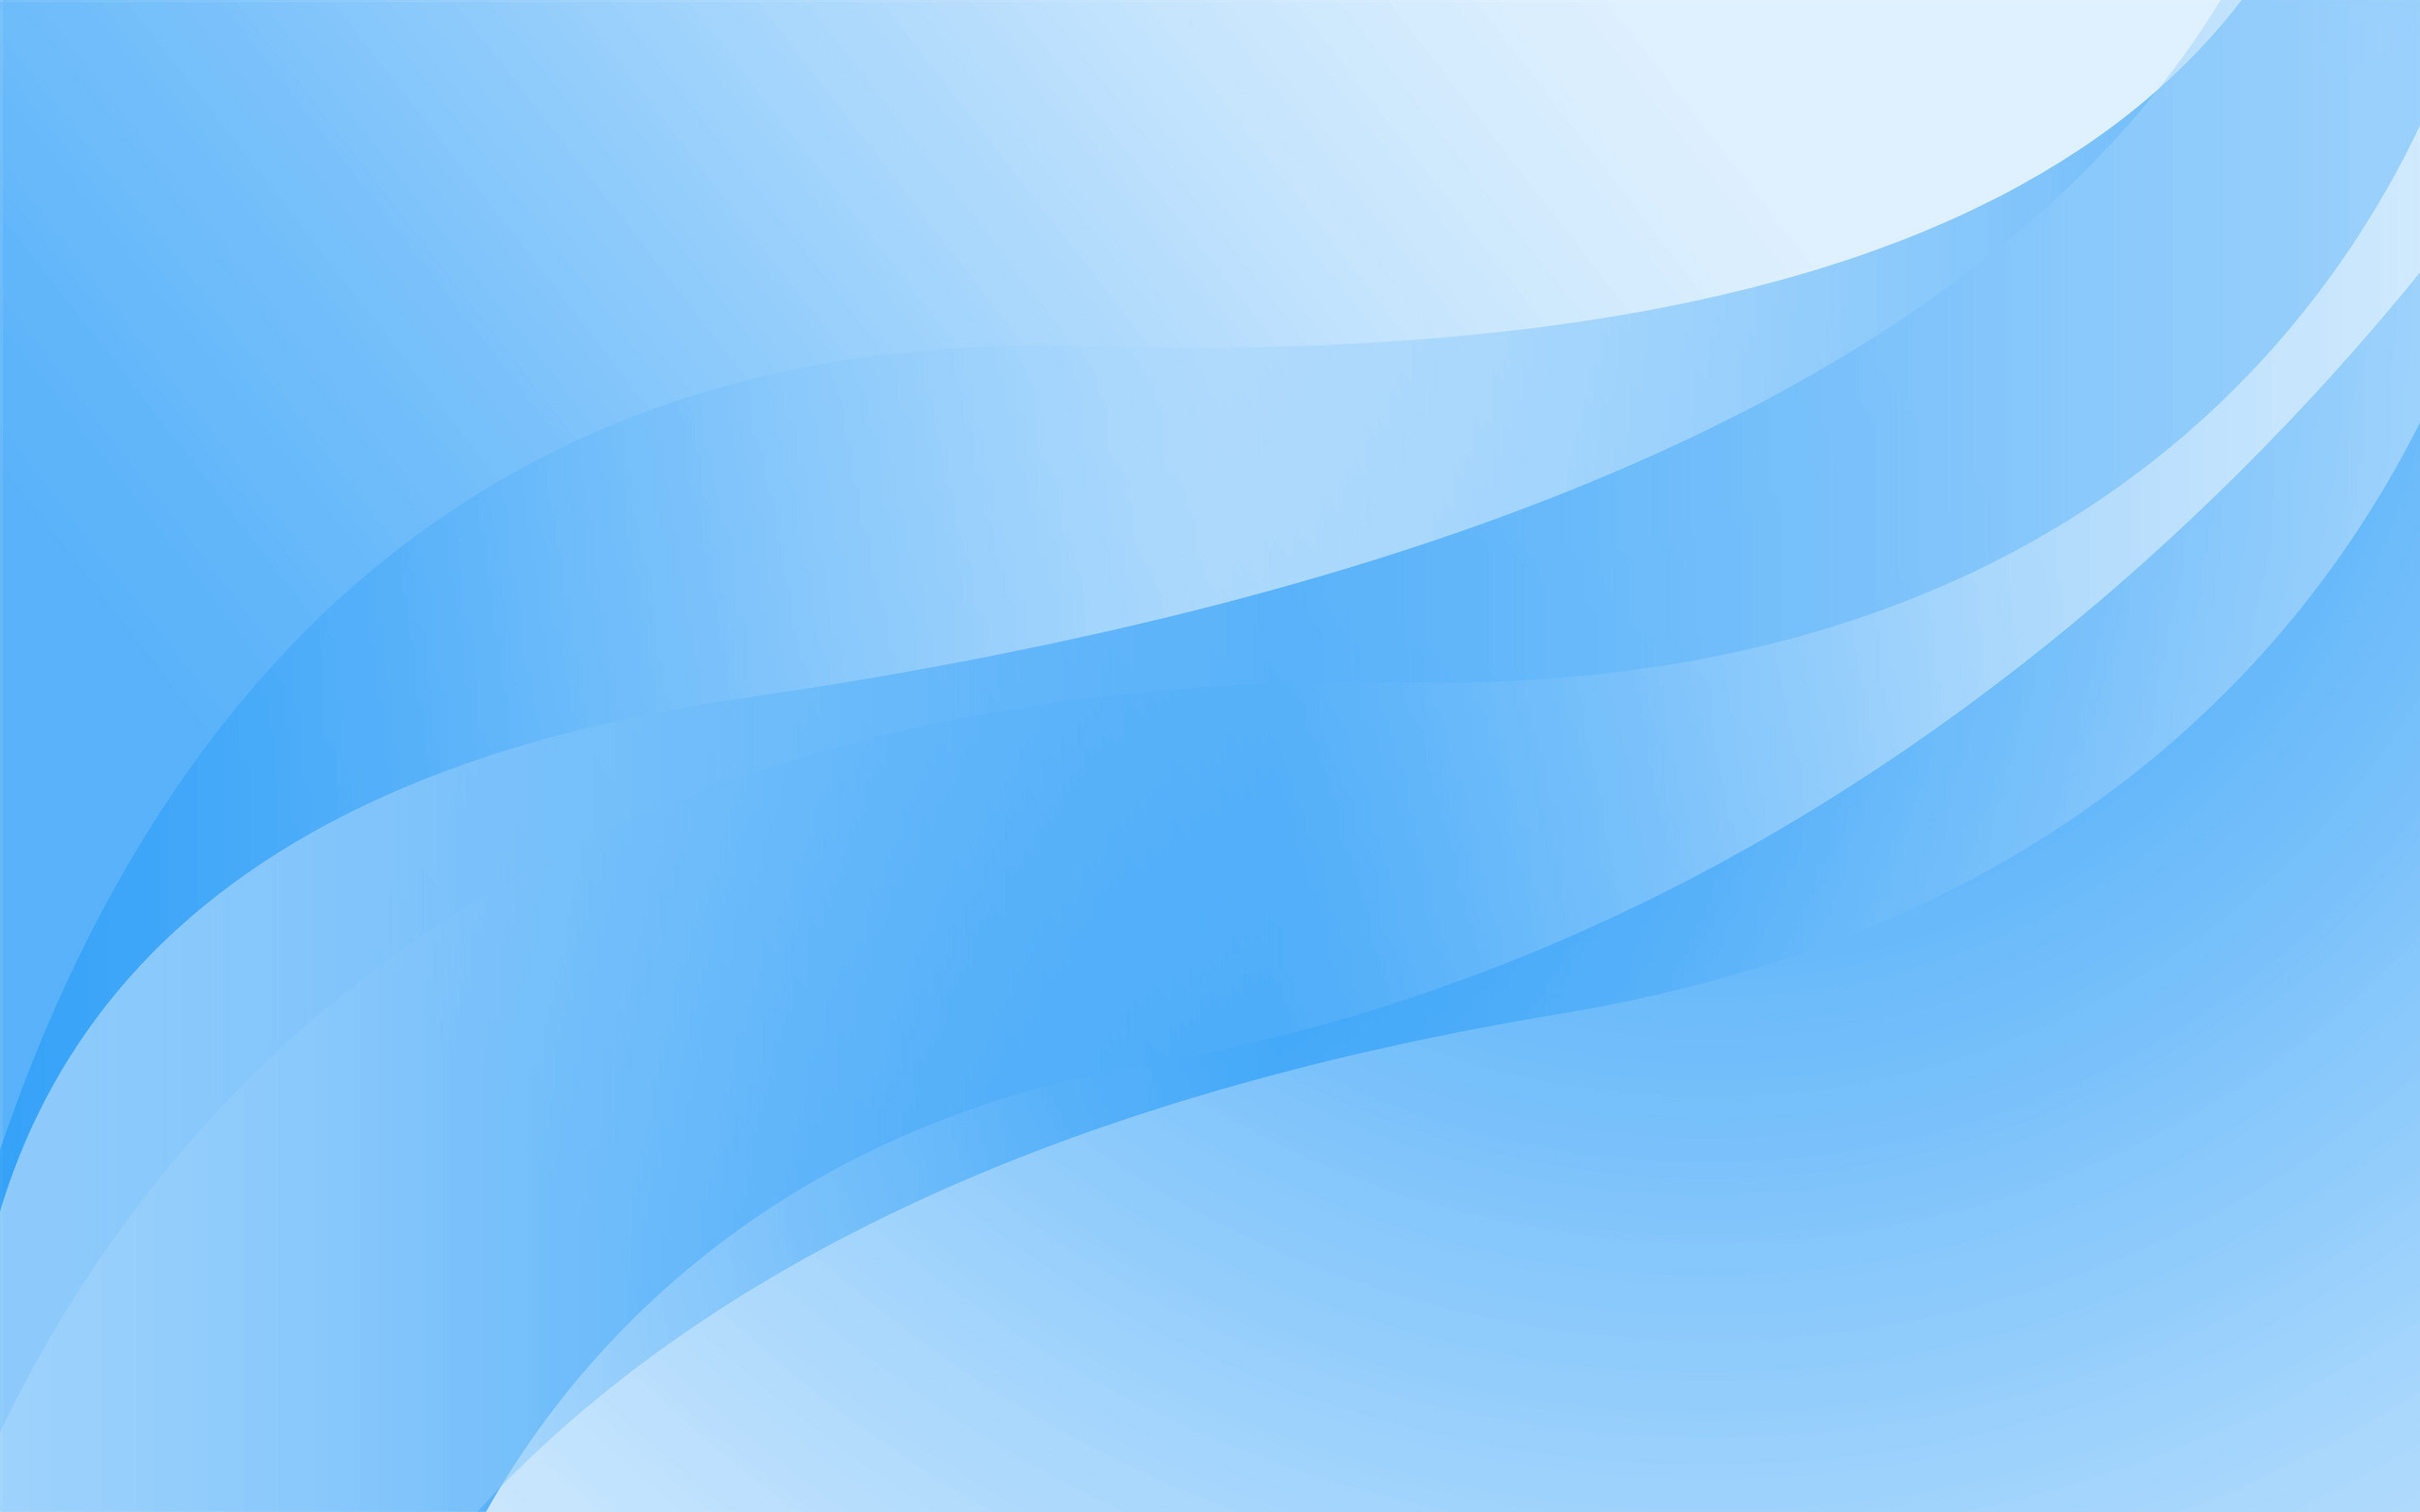 2560x1600 Light Blue HD Backgrounds Free Download.